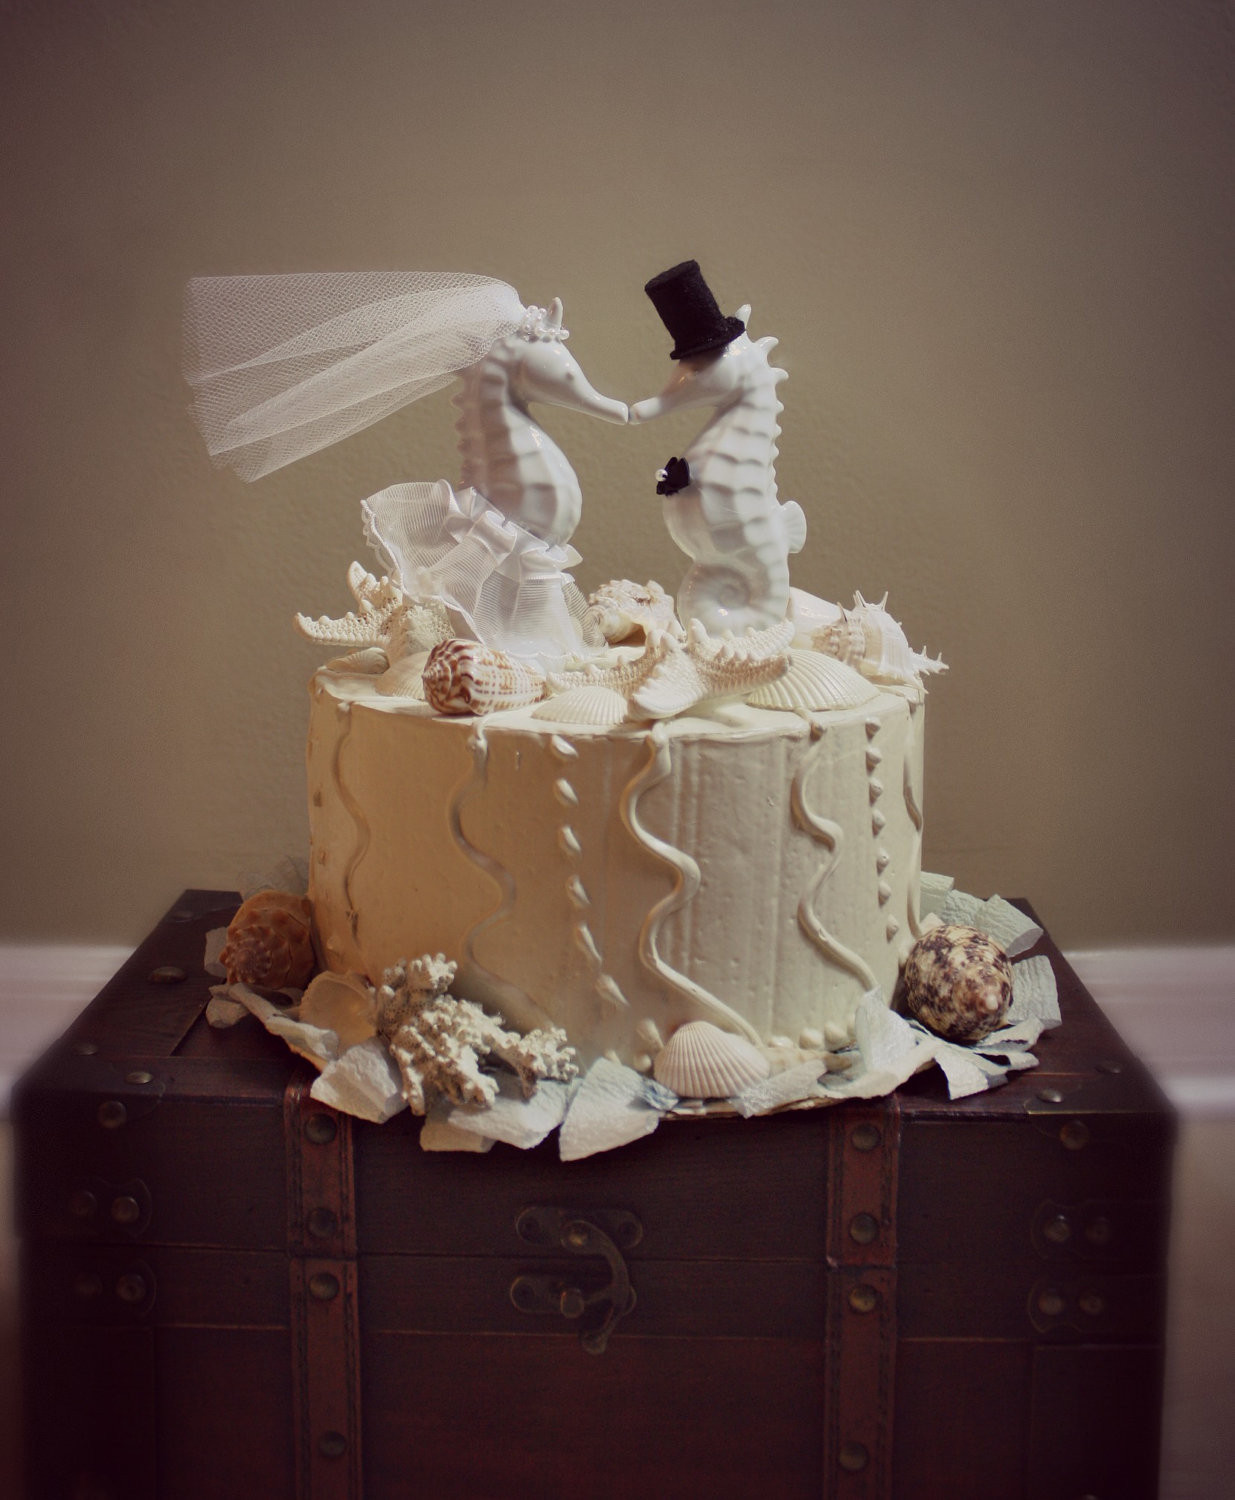 Cake Toppers For Wedding Cakes  25 Beach Wedding Cake Toppers Ideas